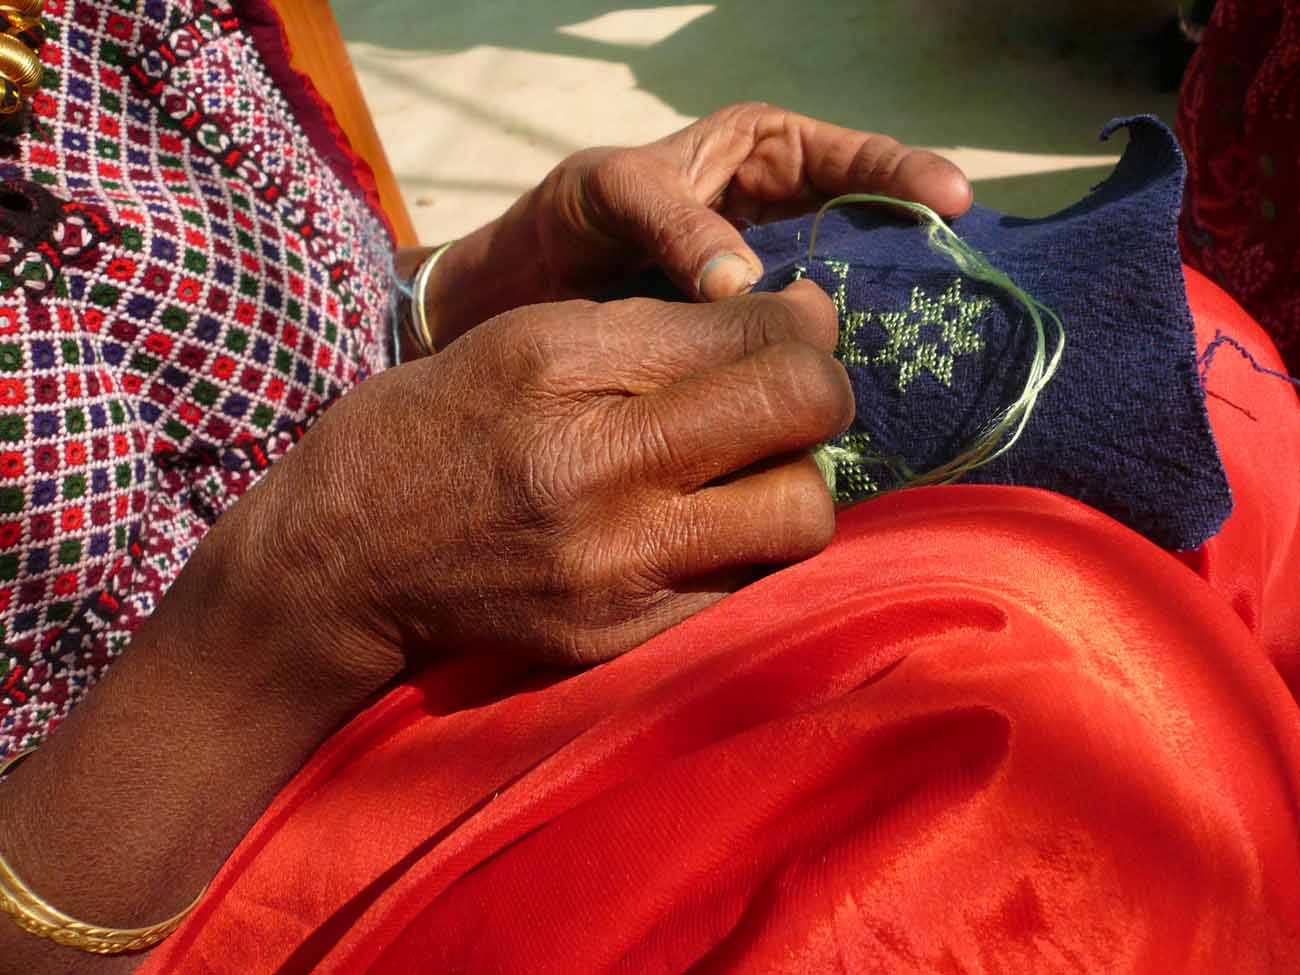 broderie-indienne-6